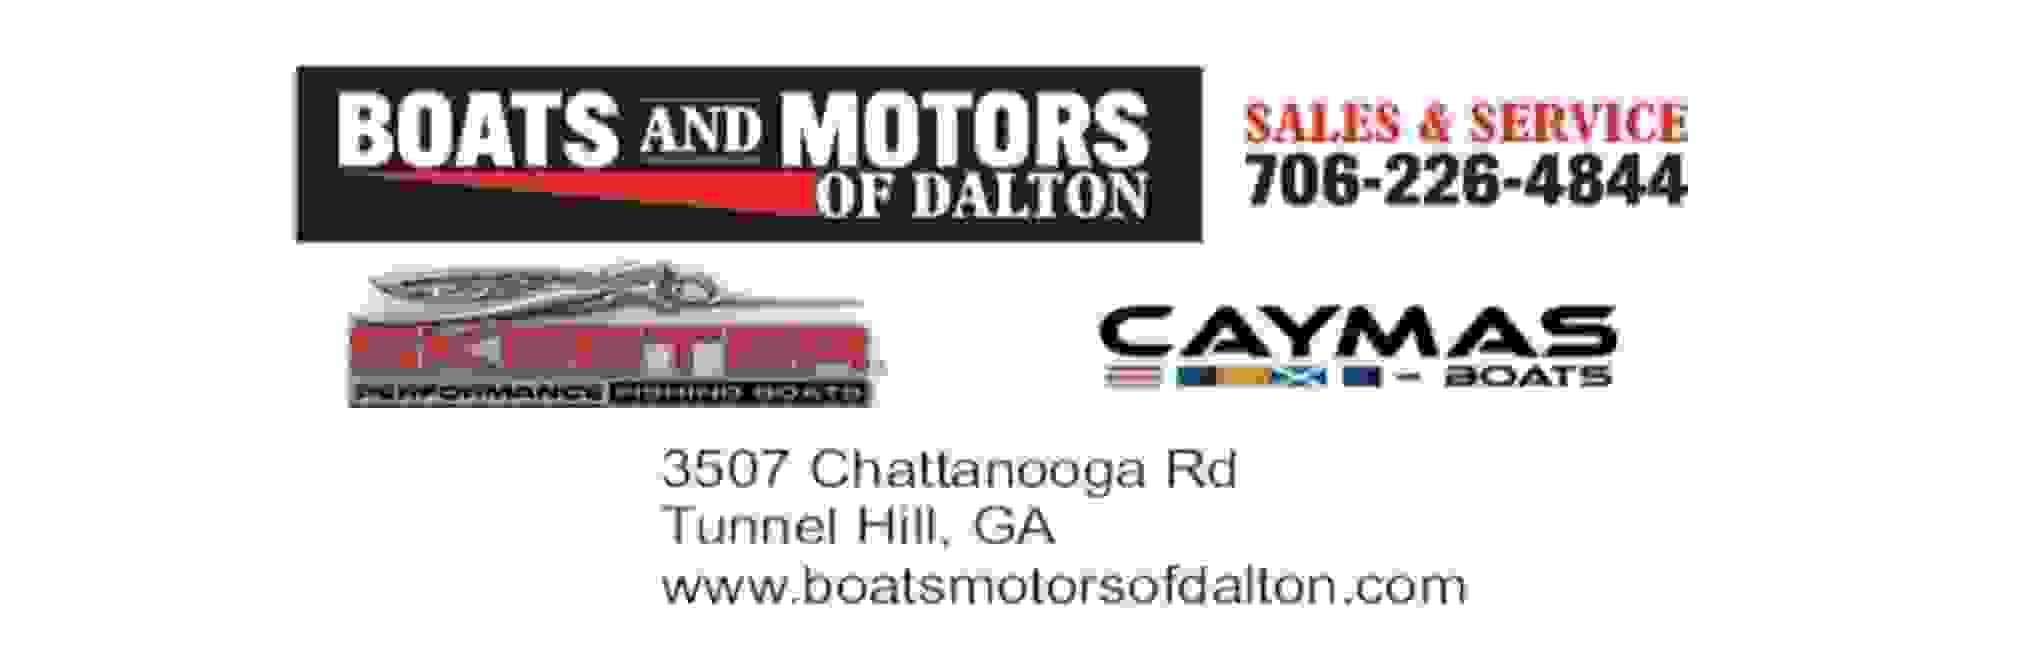 Boats and Motors of Dalton 3507 Chattanooga Road Tunnel Hill, Ga 30755 706-226-4844